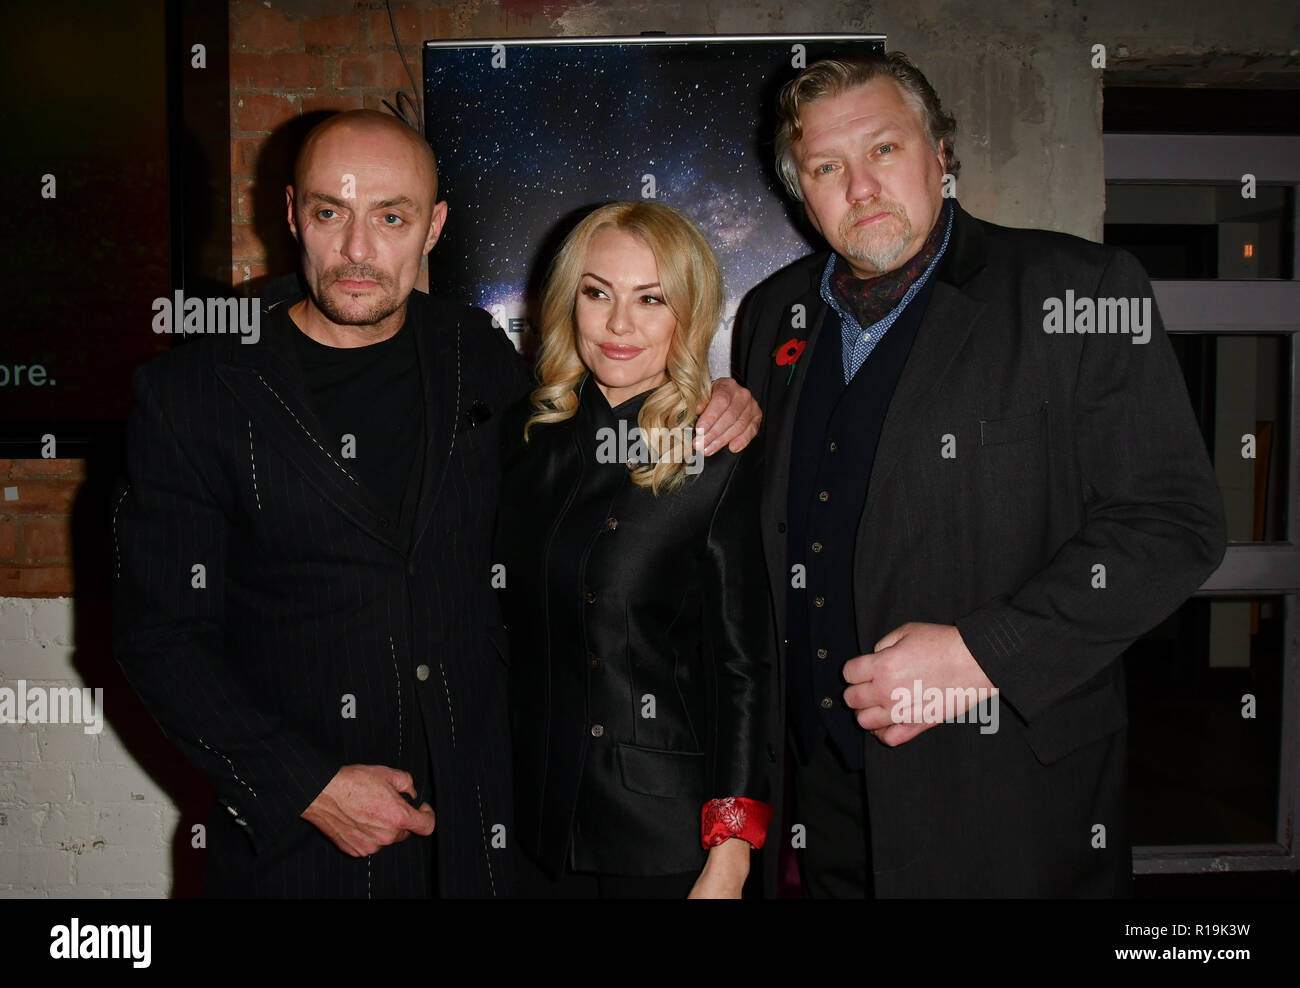 Sean Cronin, Sarina Taylor and Rock Salt arrivers at Eleven Film Premiere at Picture House Central, Piccadilly Circus on 10 November 2018, London, Uk. - Stock Image